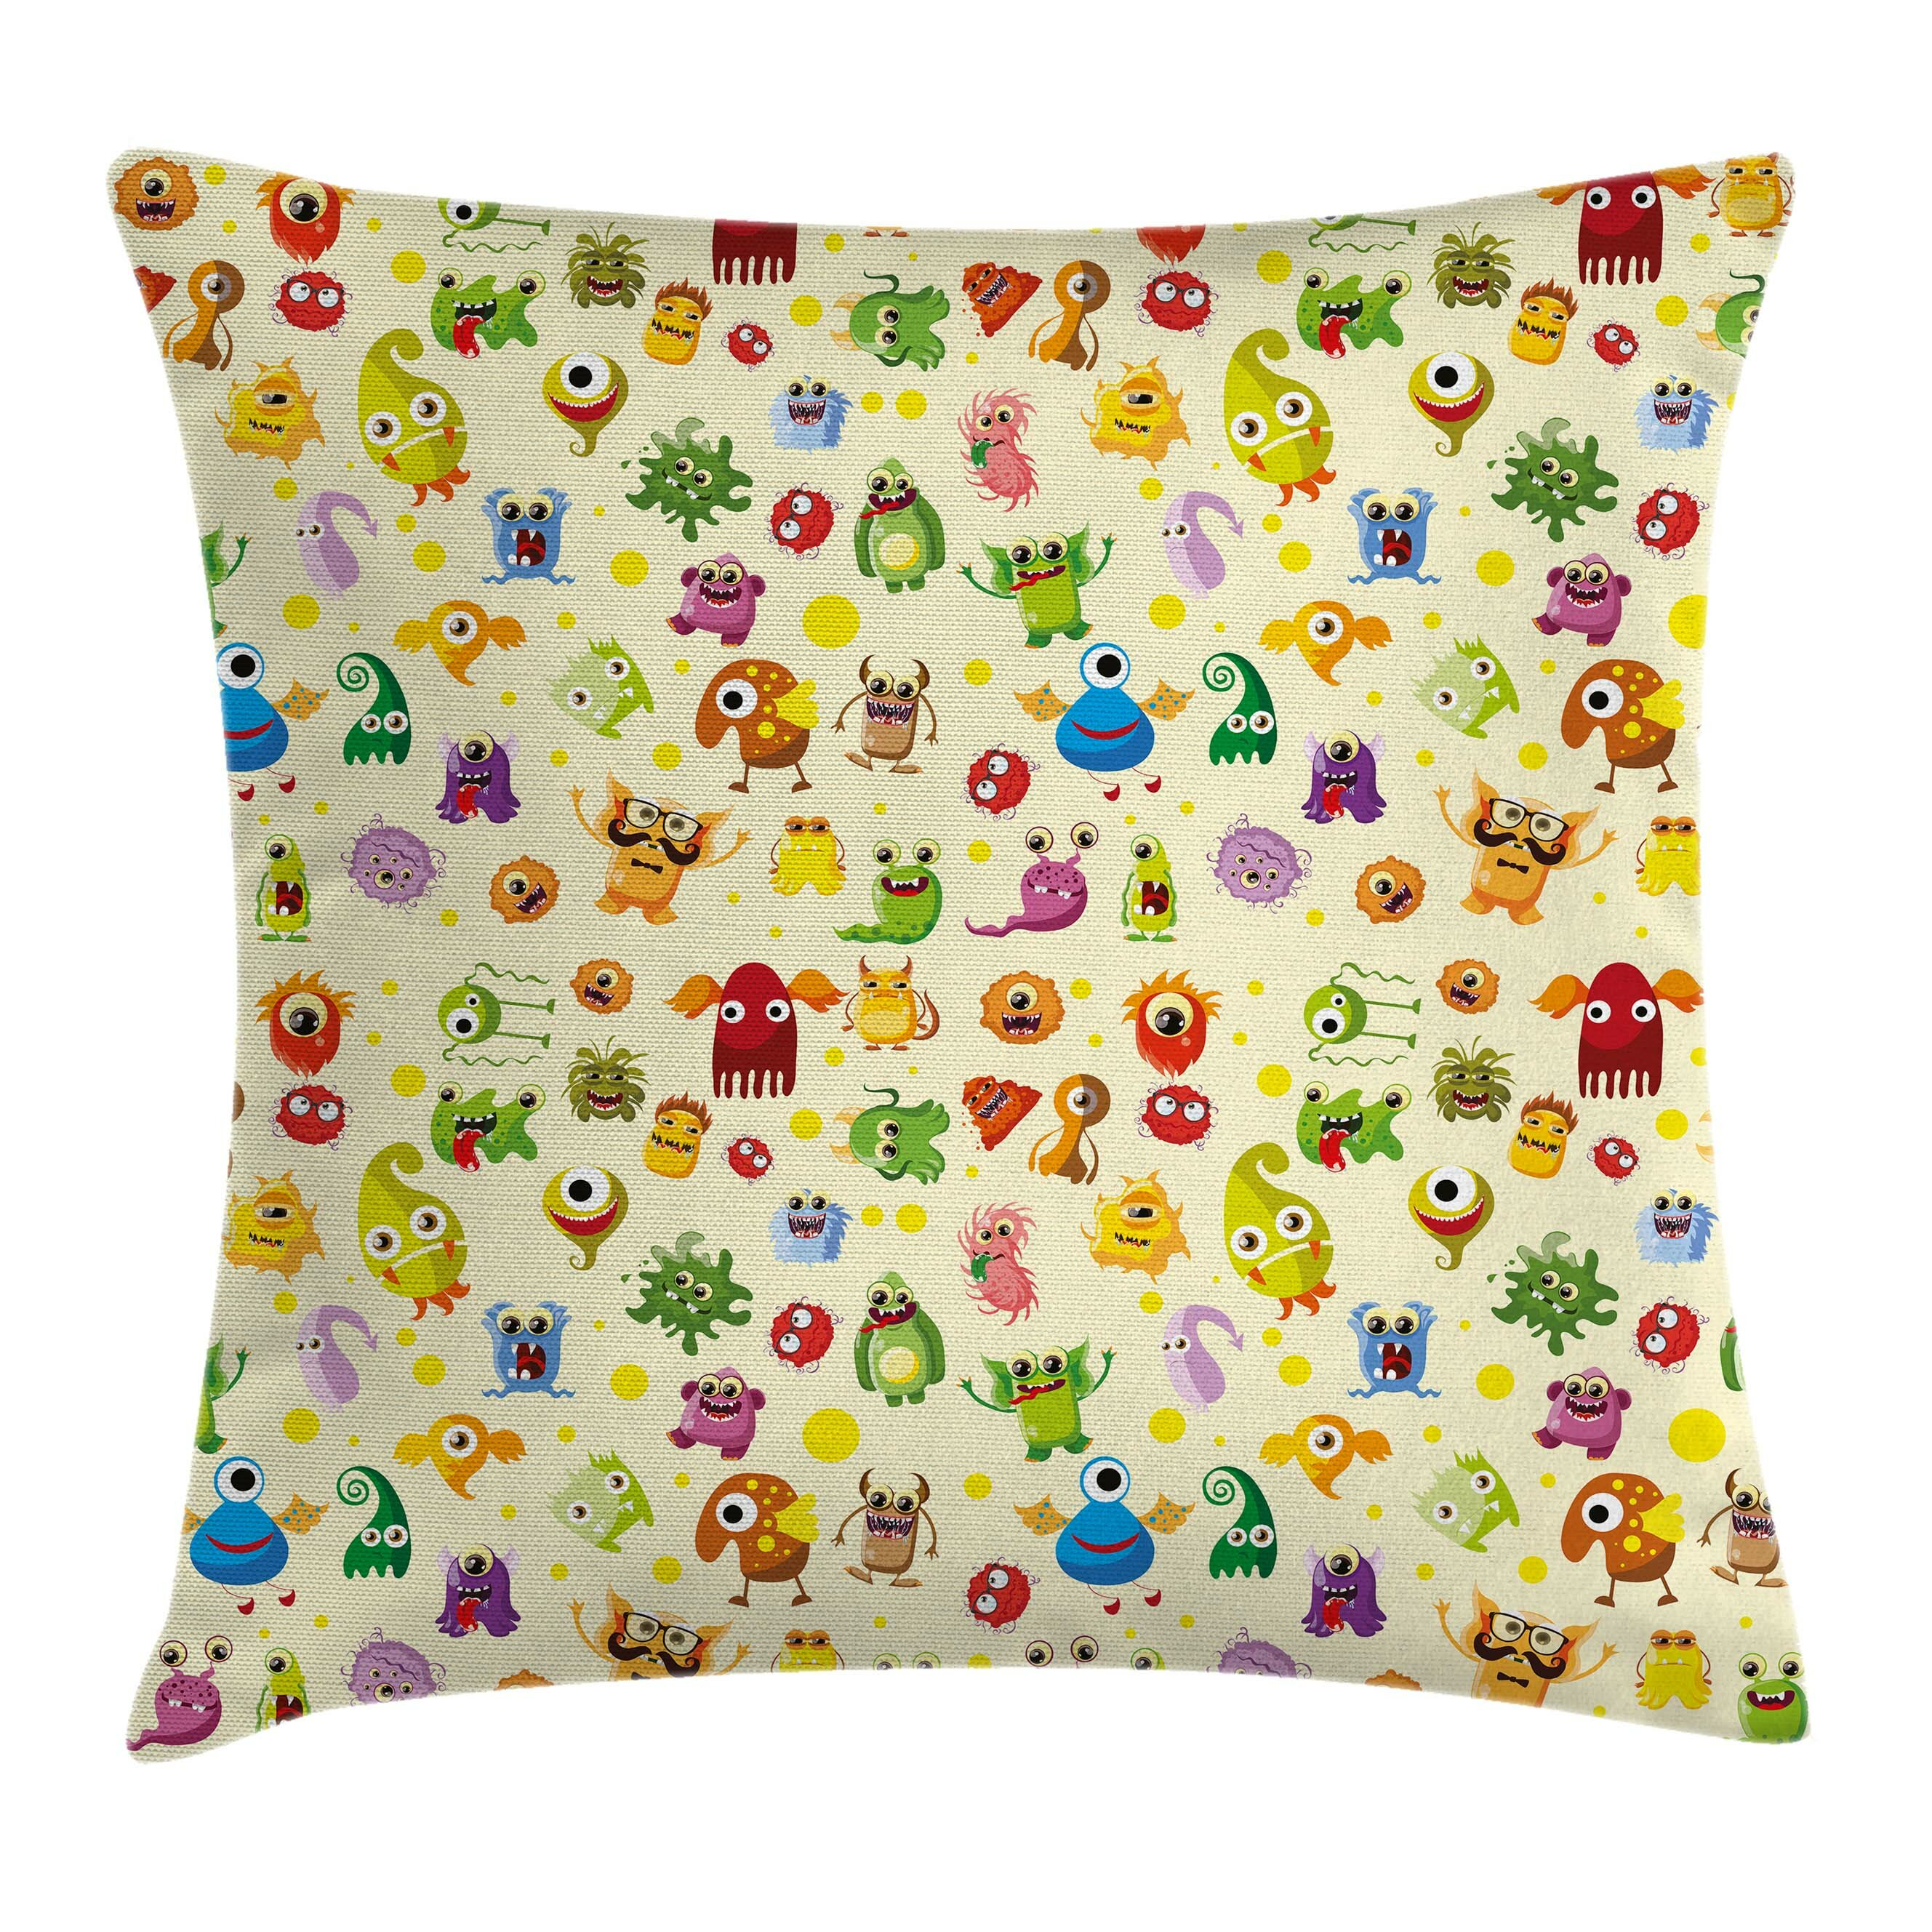 East Urban Home Cute Cartoon Monsters Square Pillow Cover